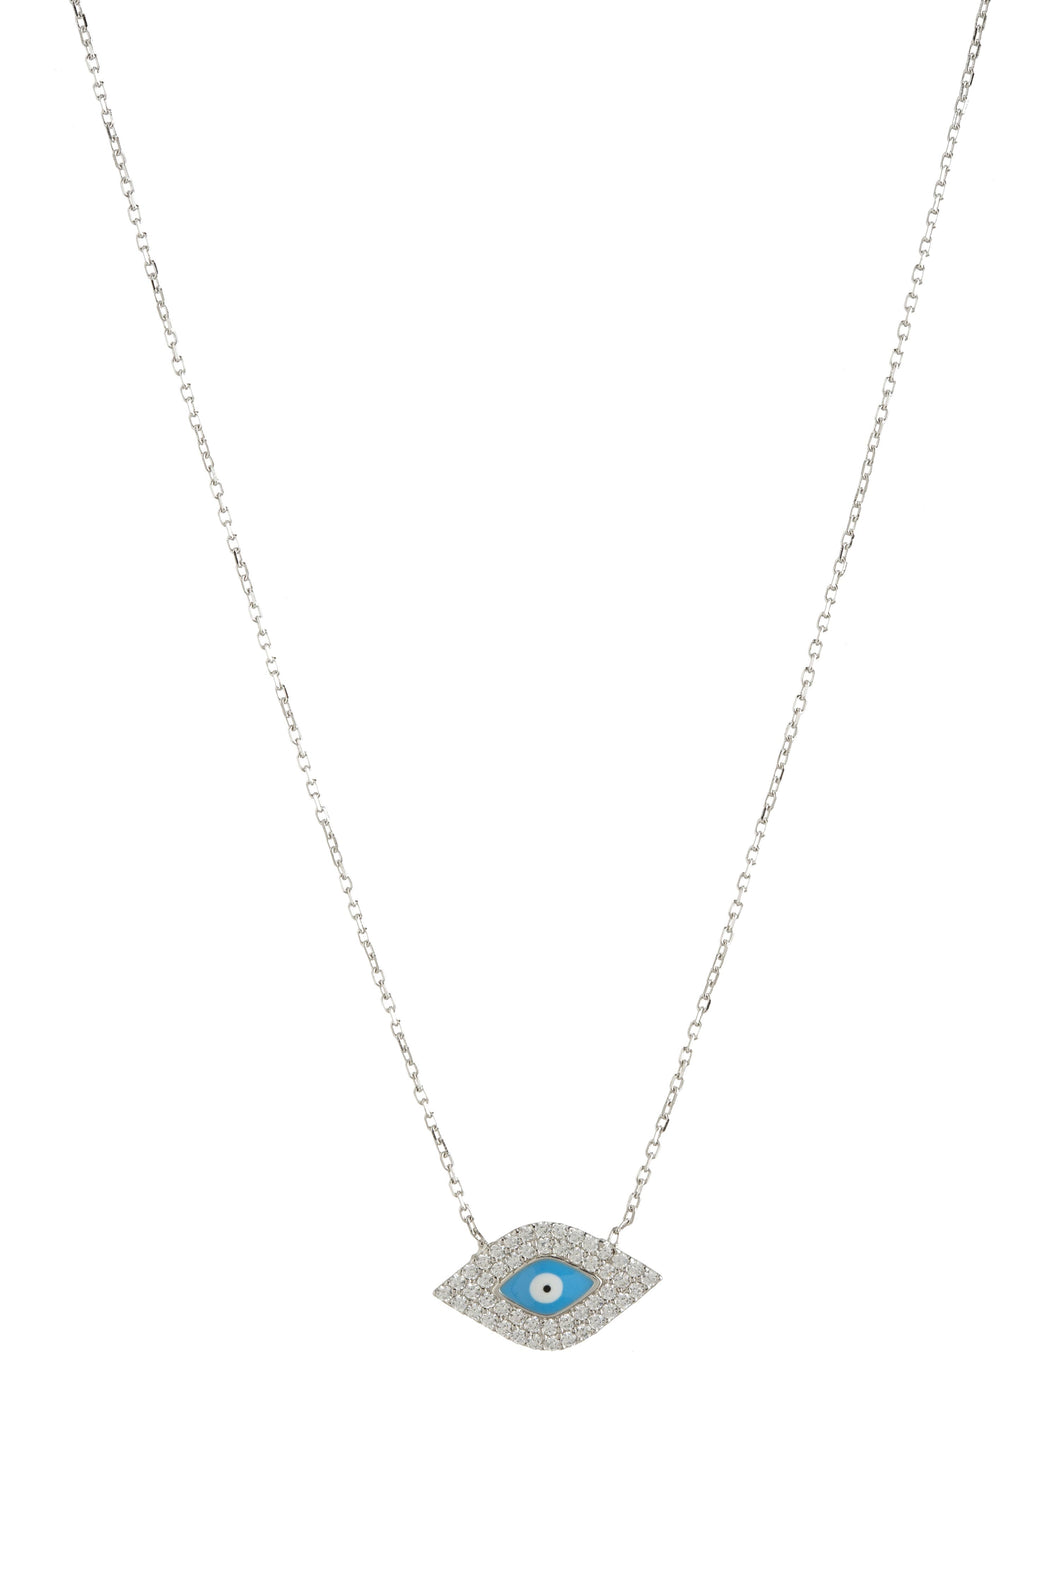 EVIL EYE CZ LG OVAL/TURQ NECKLACE